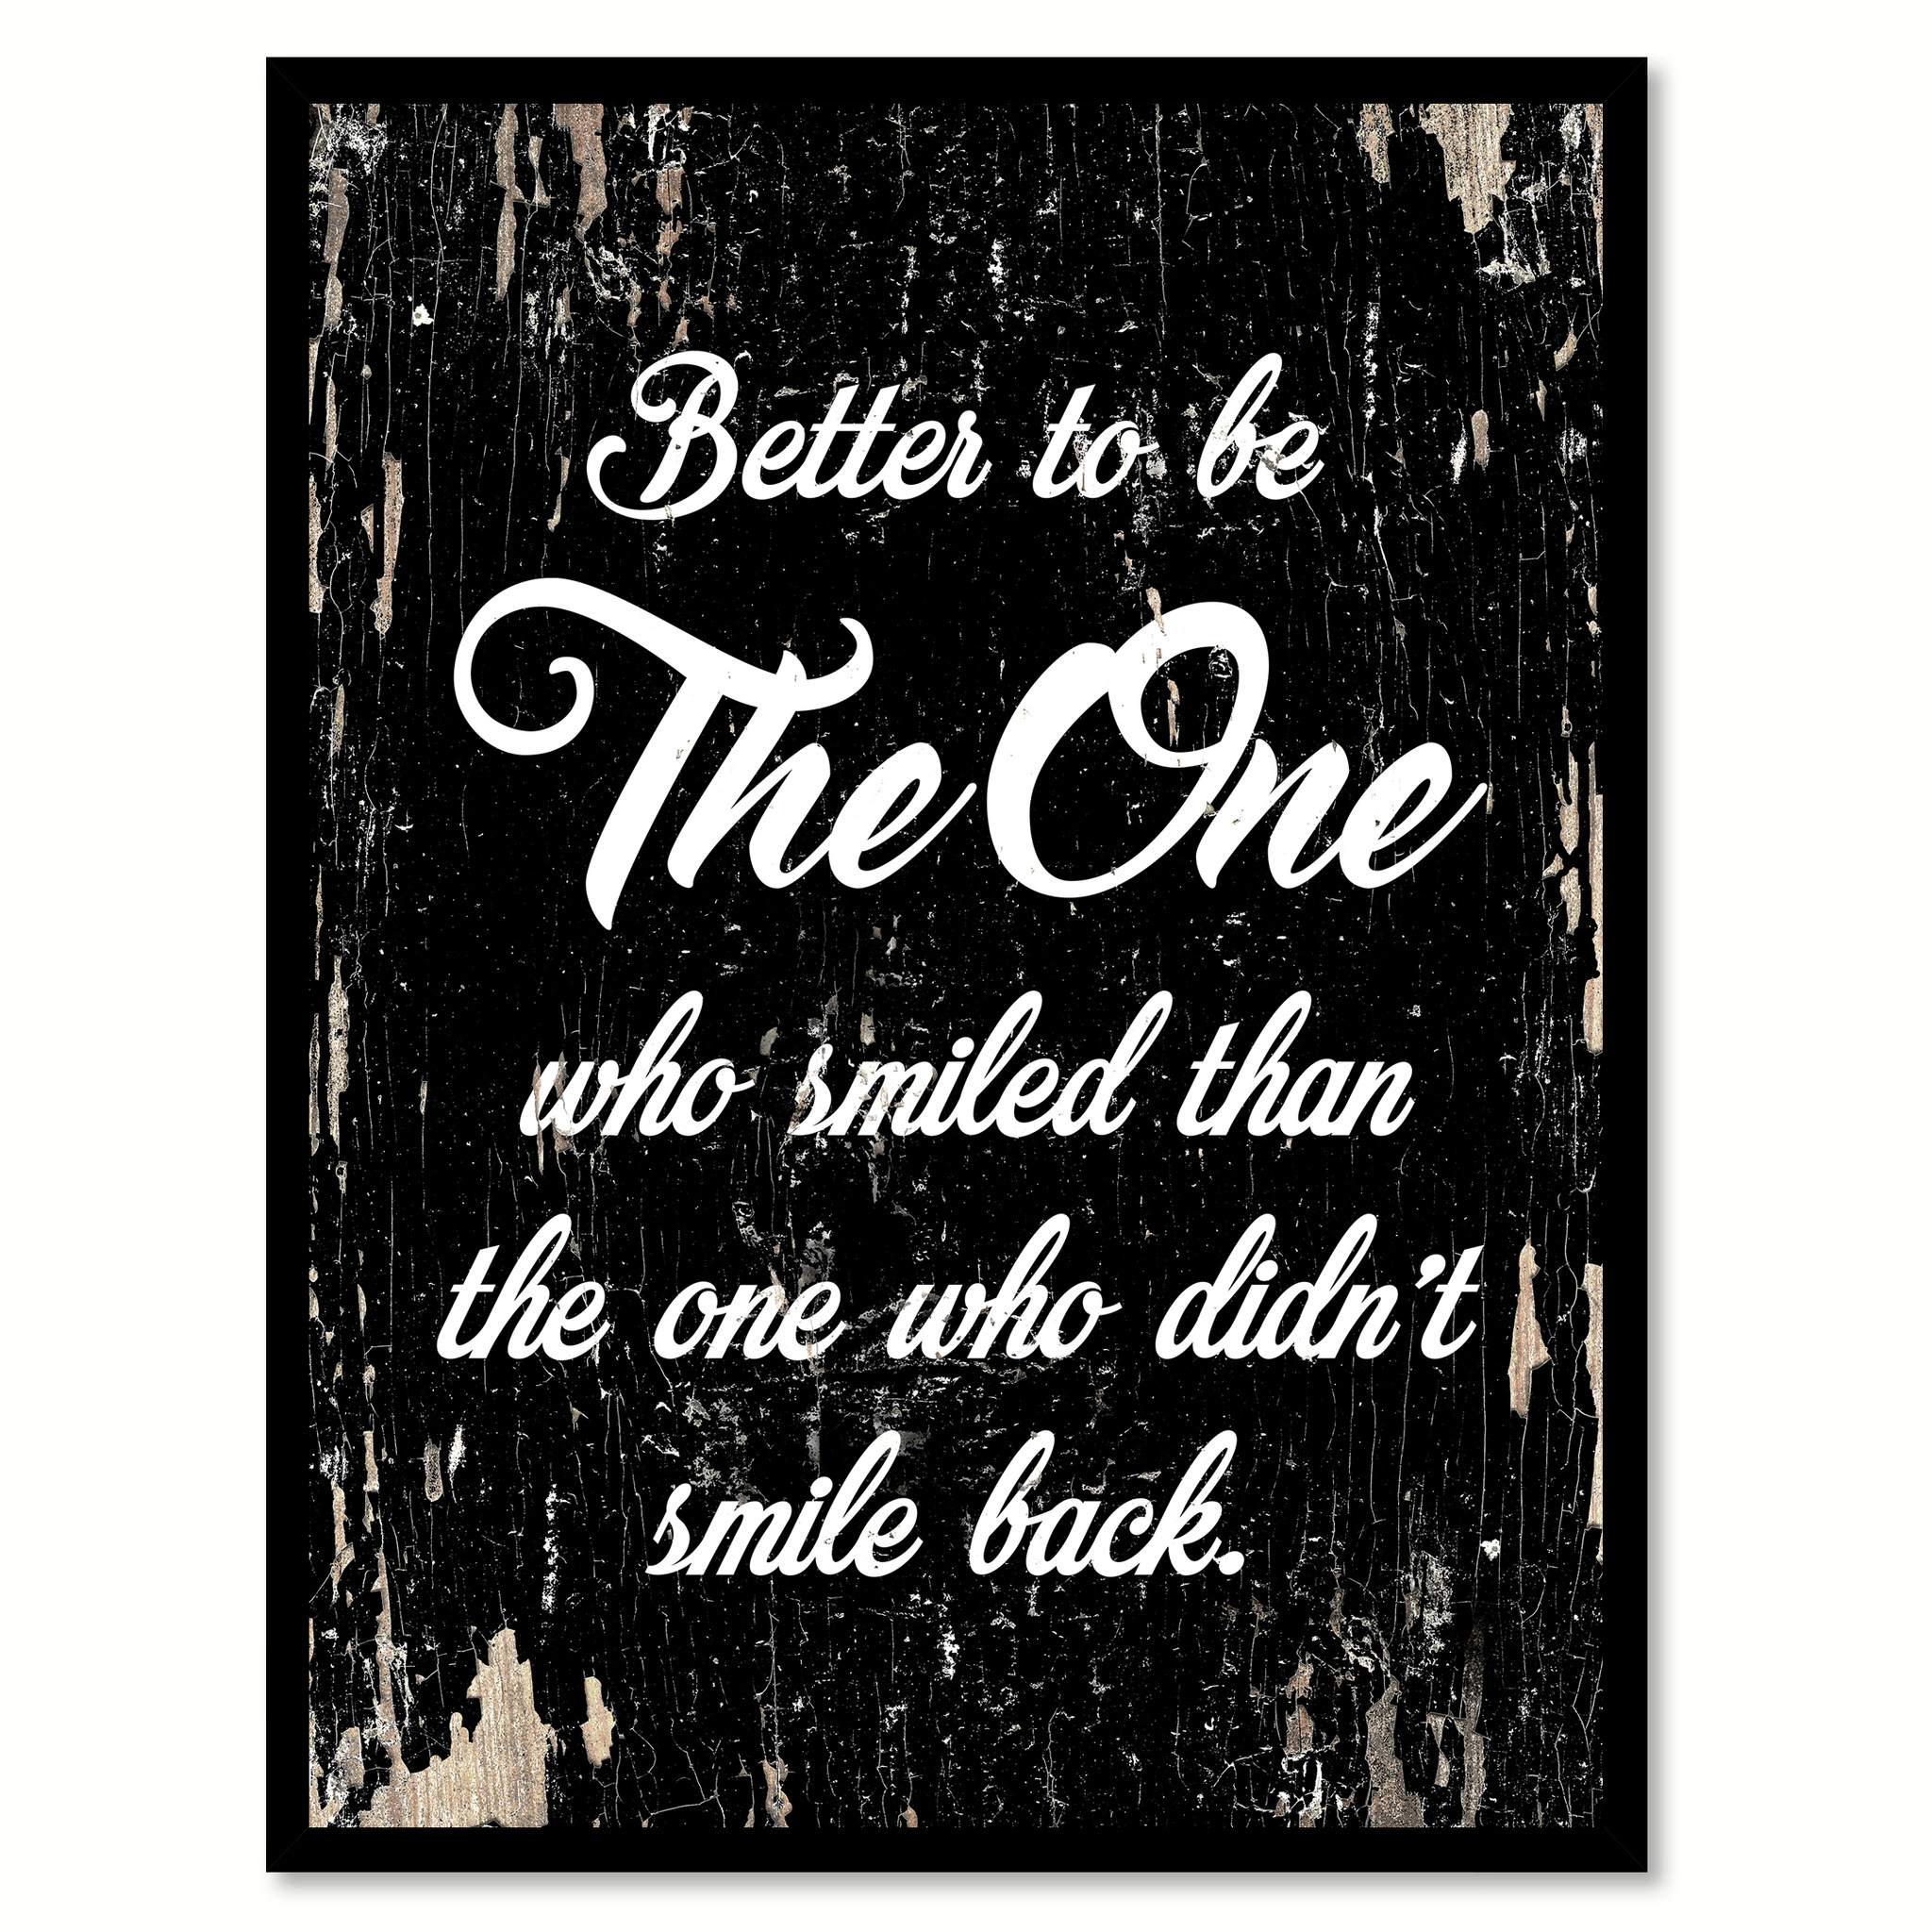 "Better To Be The One Who Smiled Than The One Quote Saying Canvas Print with Picture Frame Home Decor Wall Art Gifts 111975 - 7""x9\"""